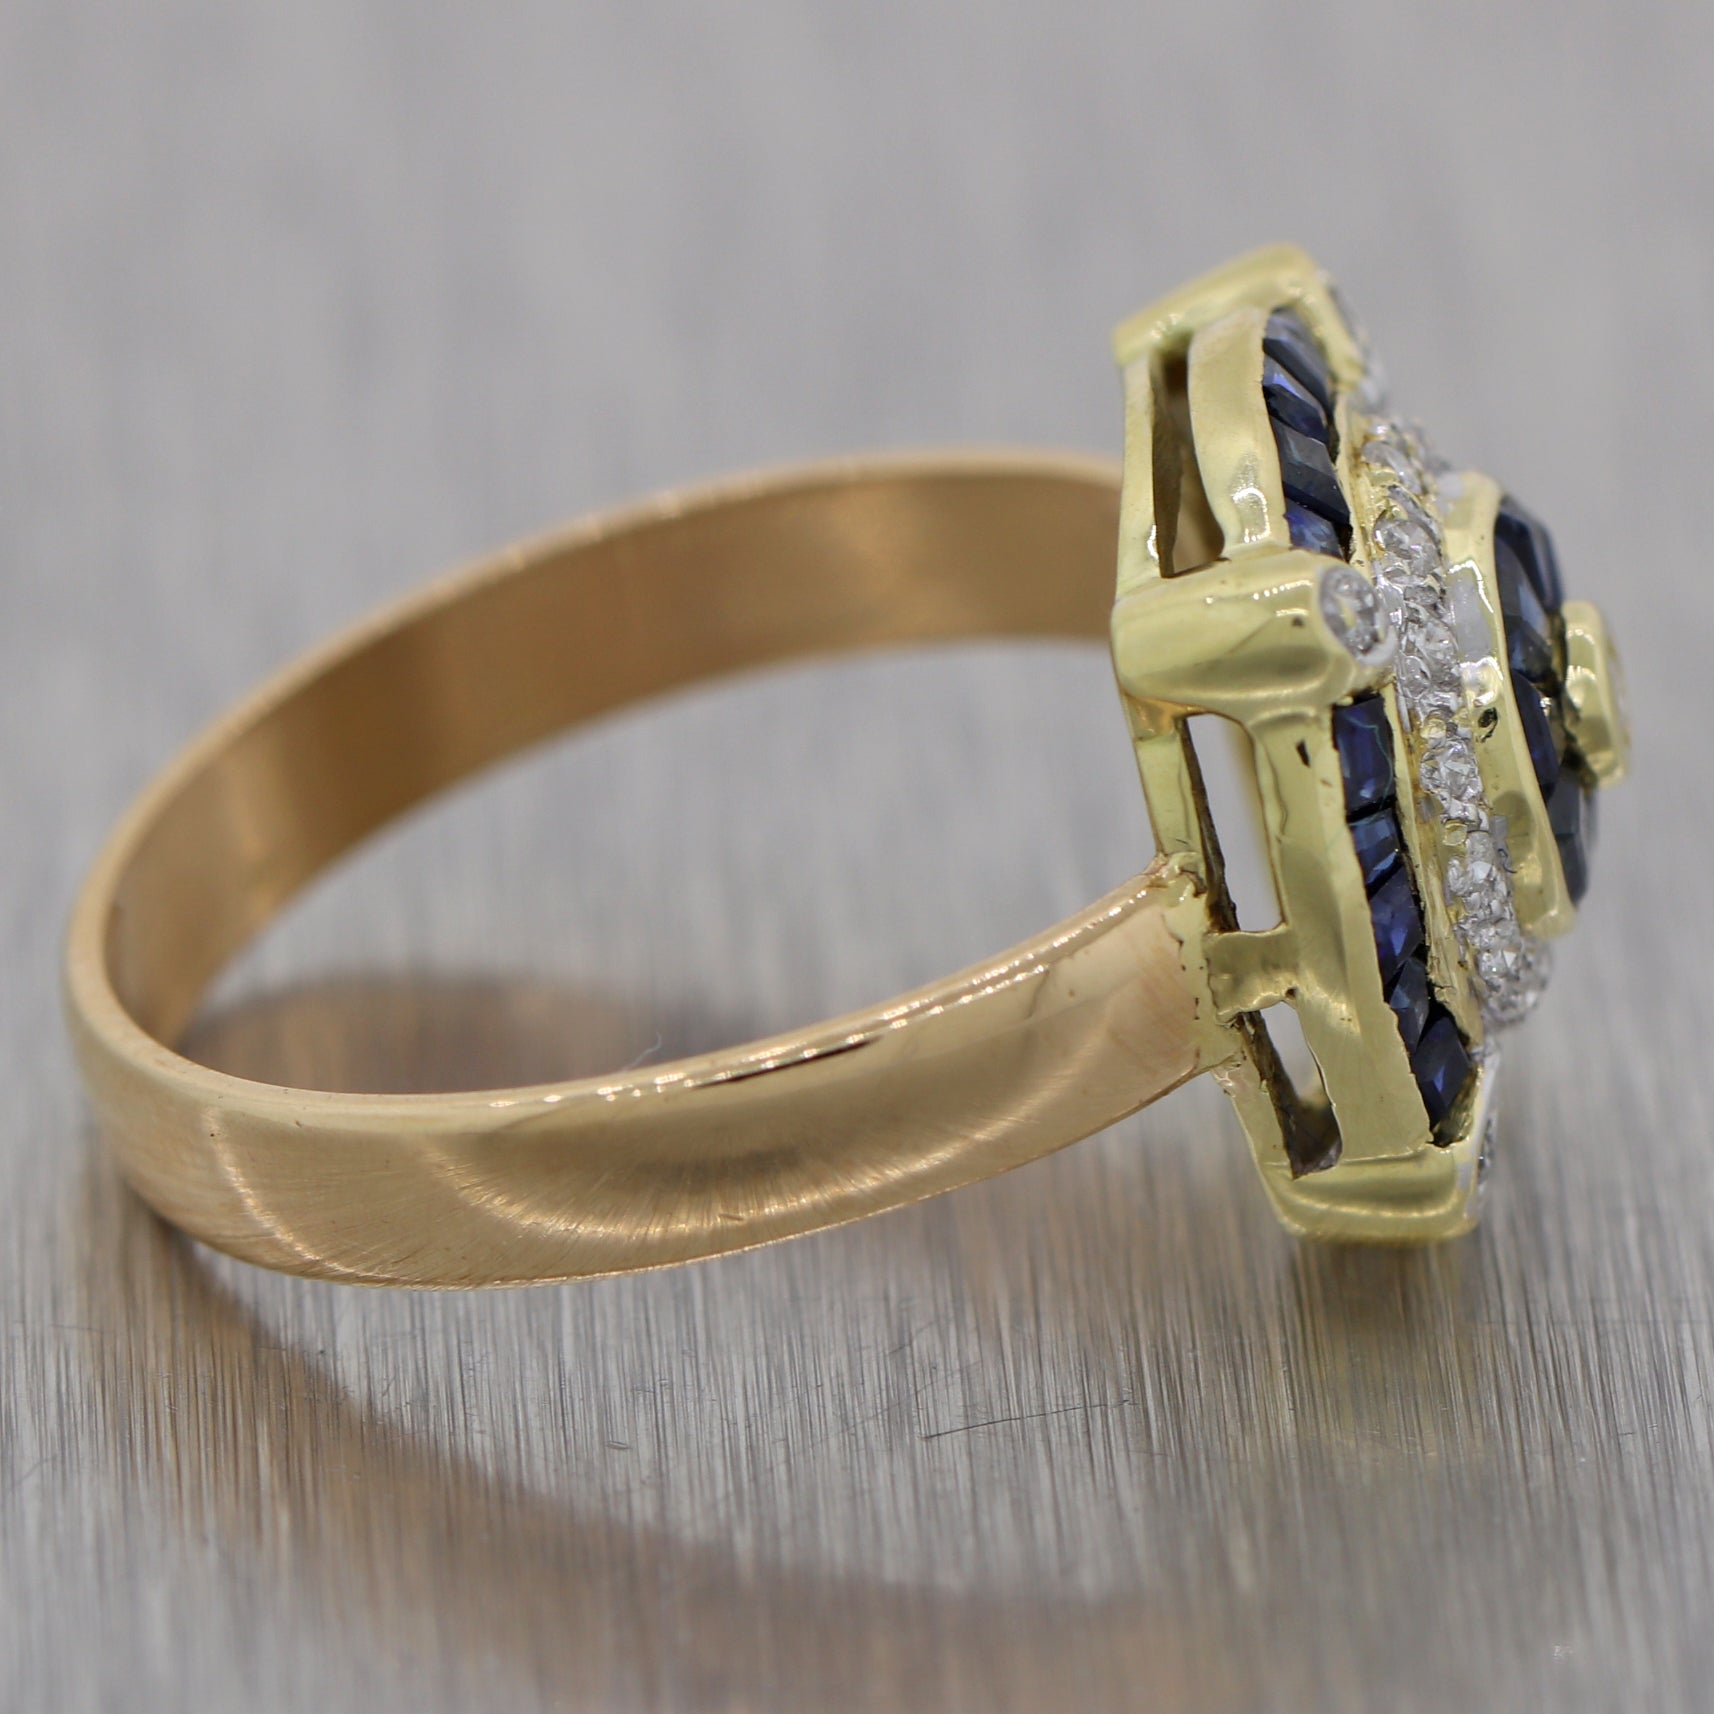 Vintage Estate 18k Yellow Gold Art Deco Style 0.75ctw Sapphire & Diamond Ring